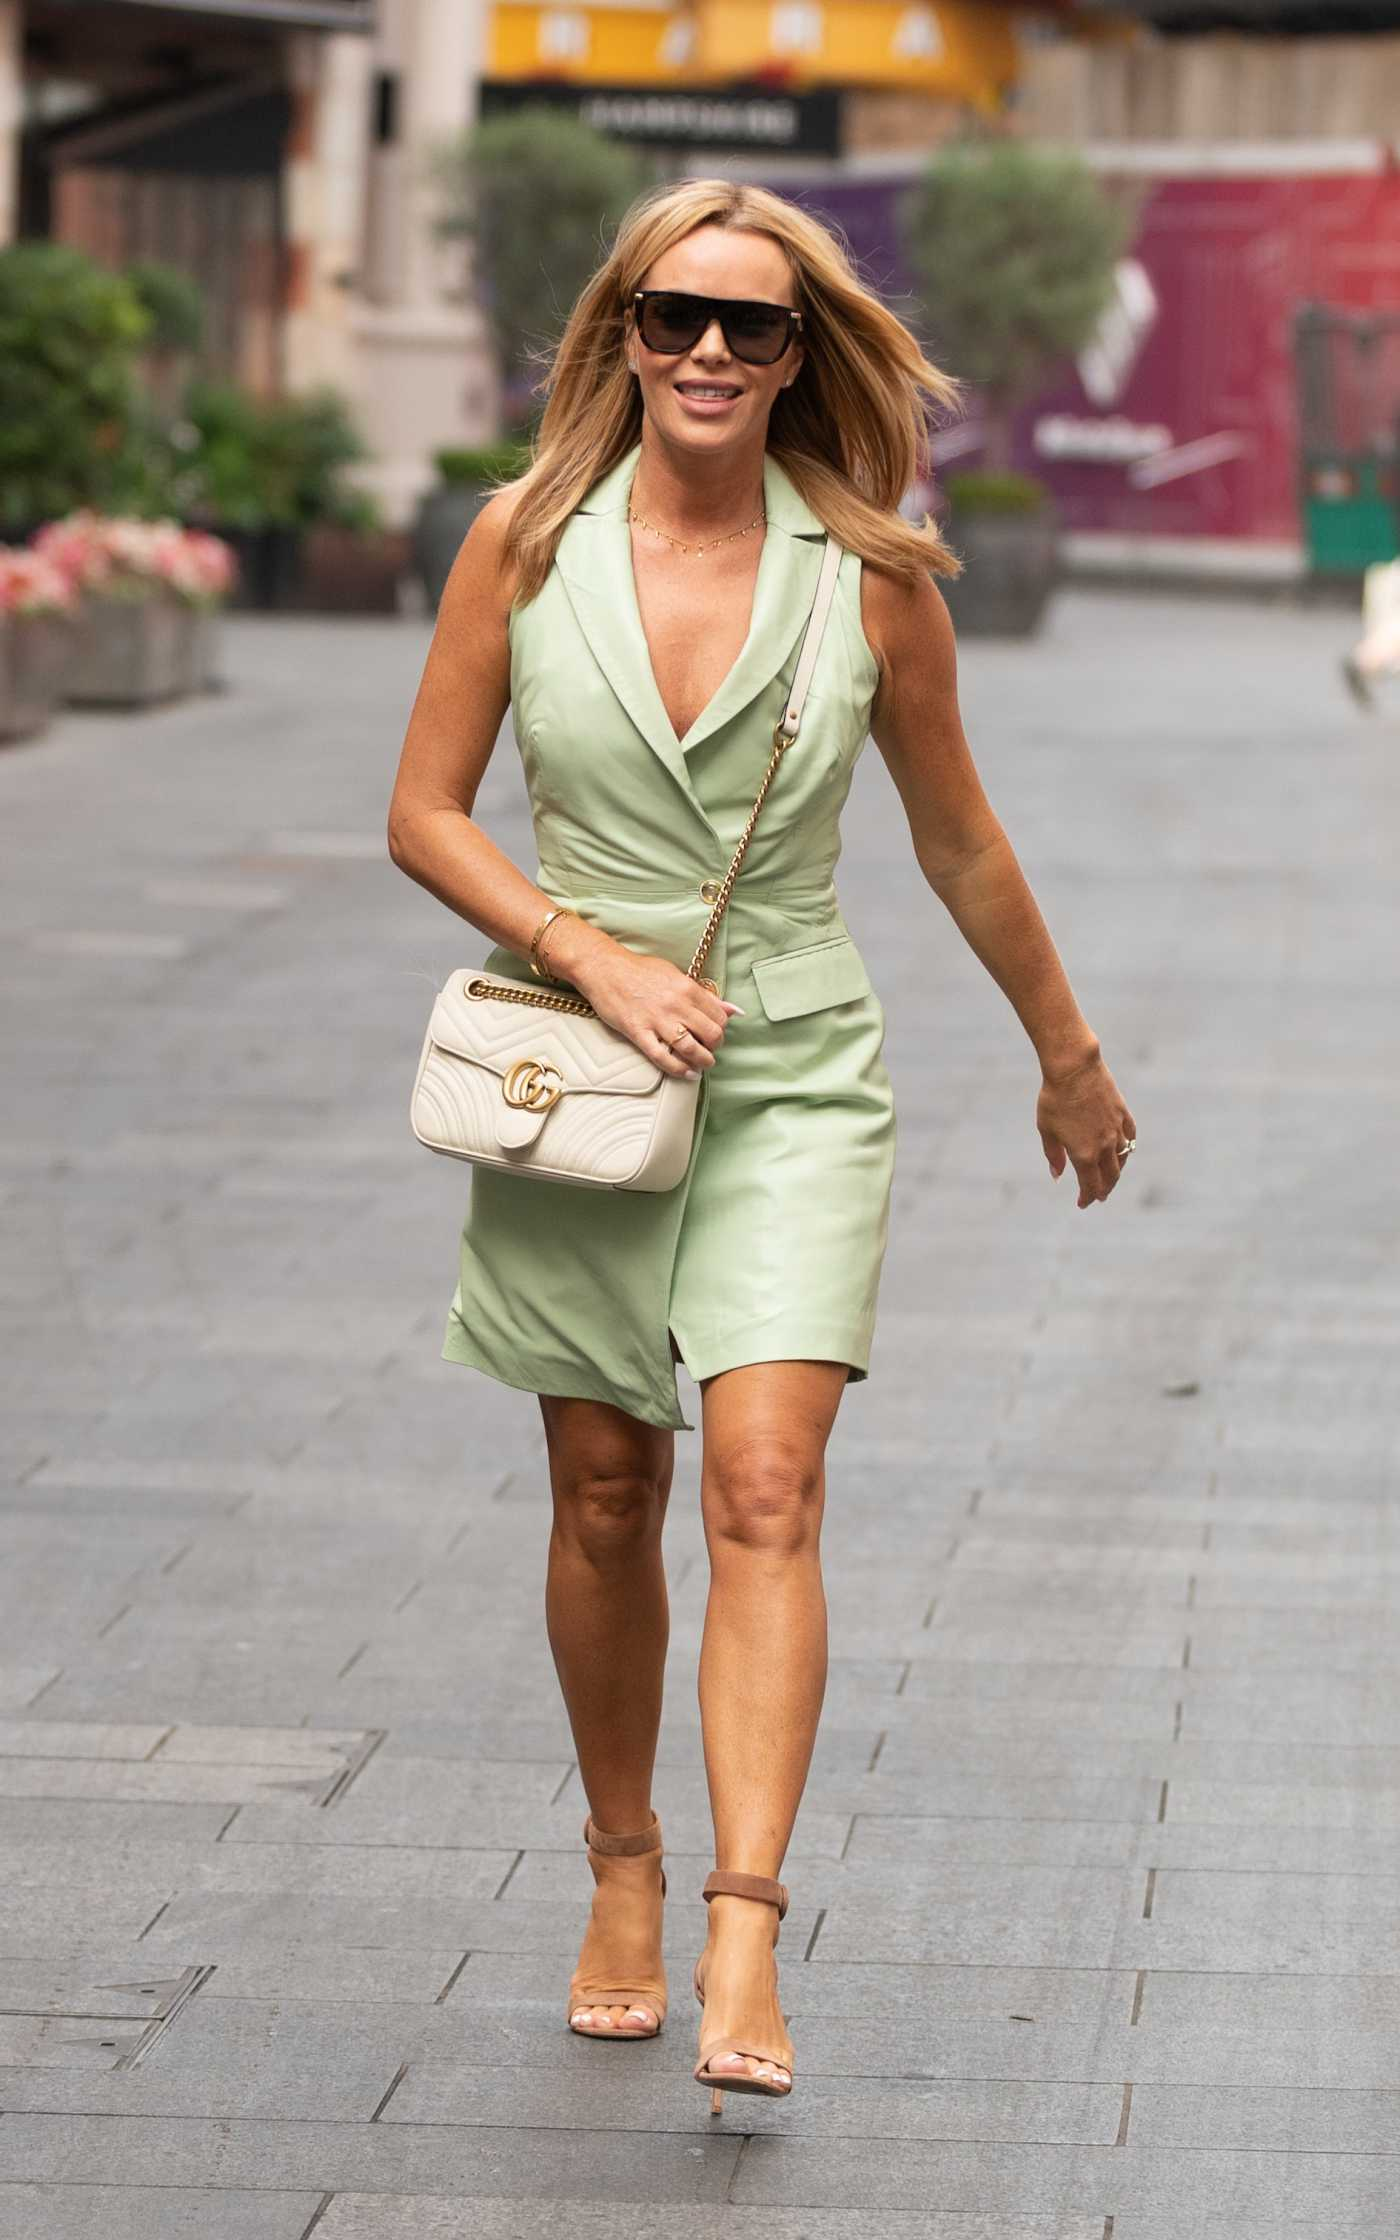 Amanda Holden in a Light Green Dress Arrives at the Global Radio in London 09/06/2021